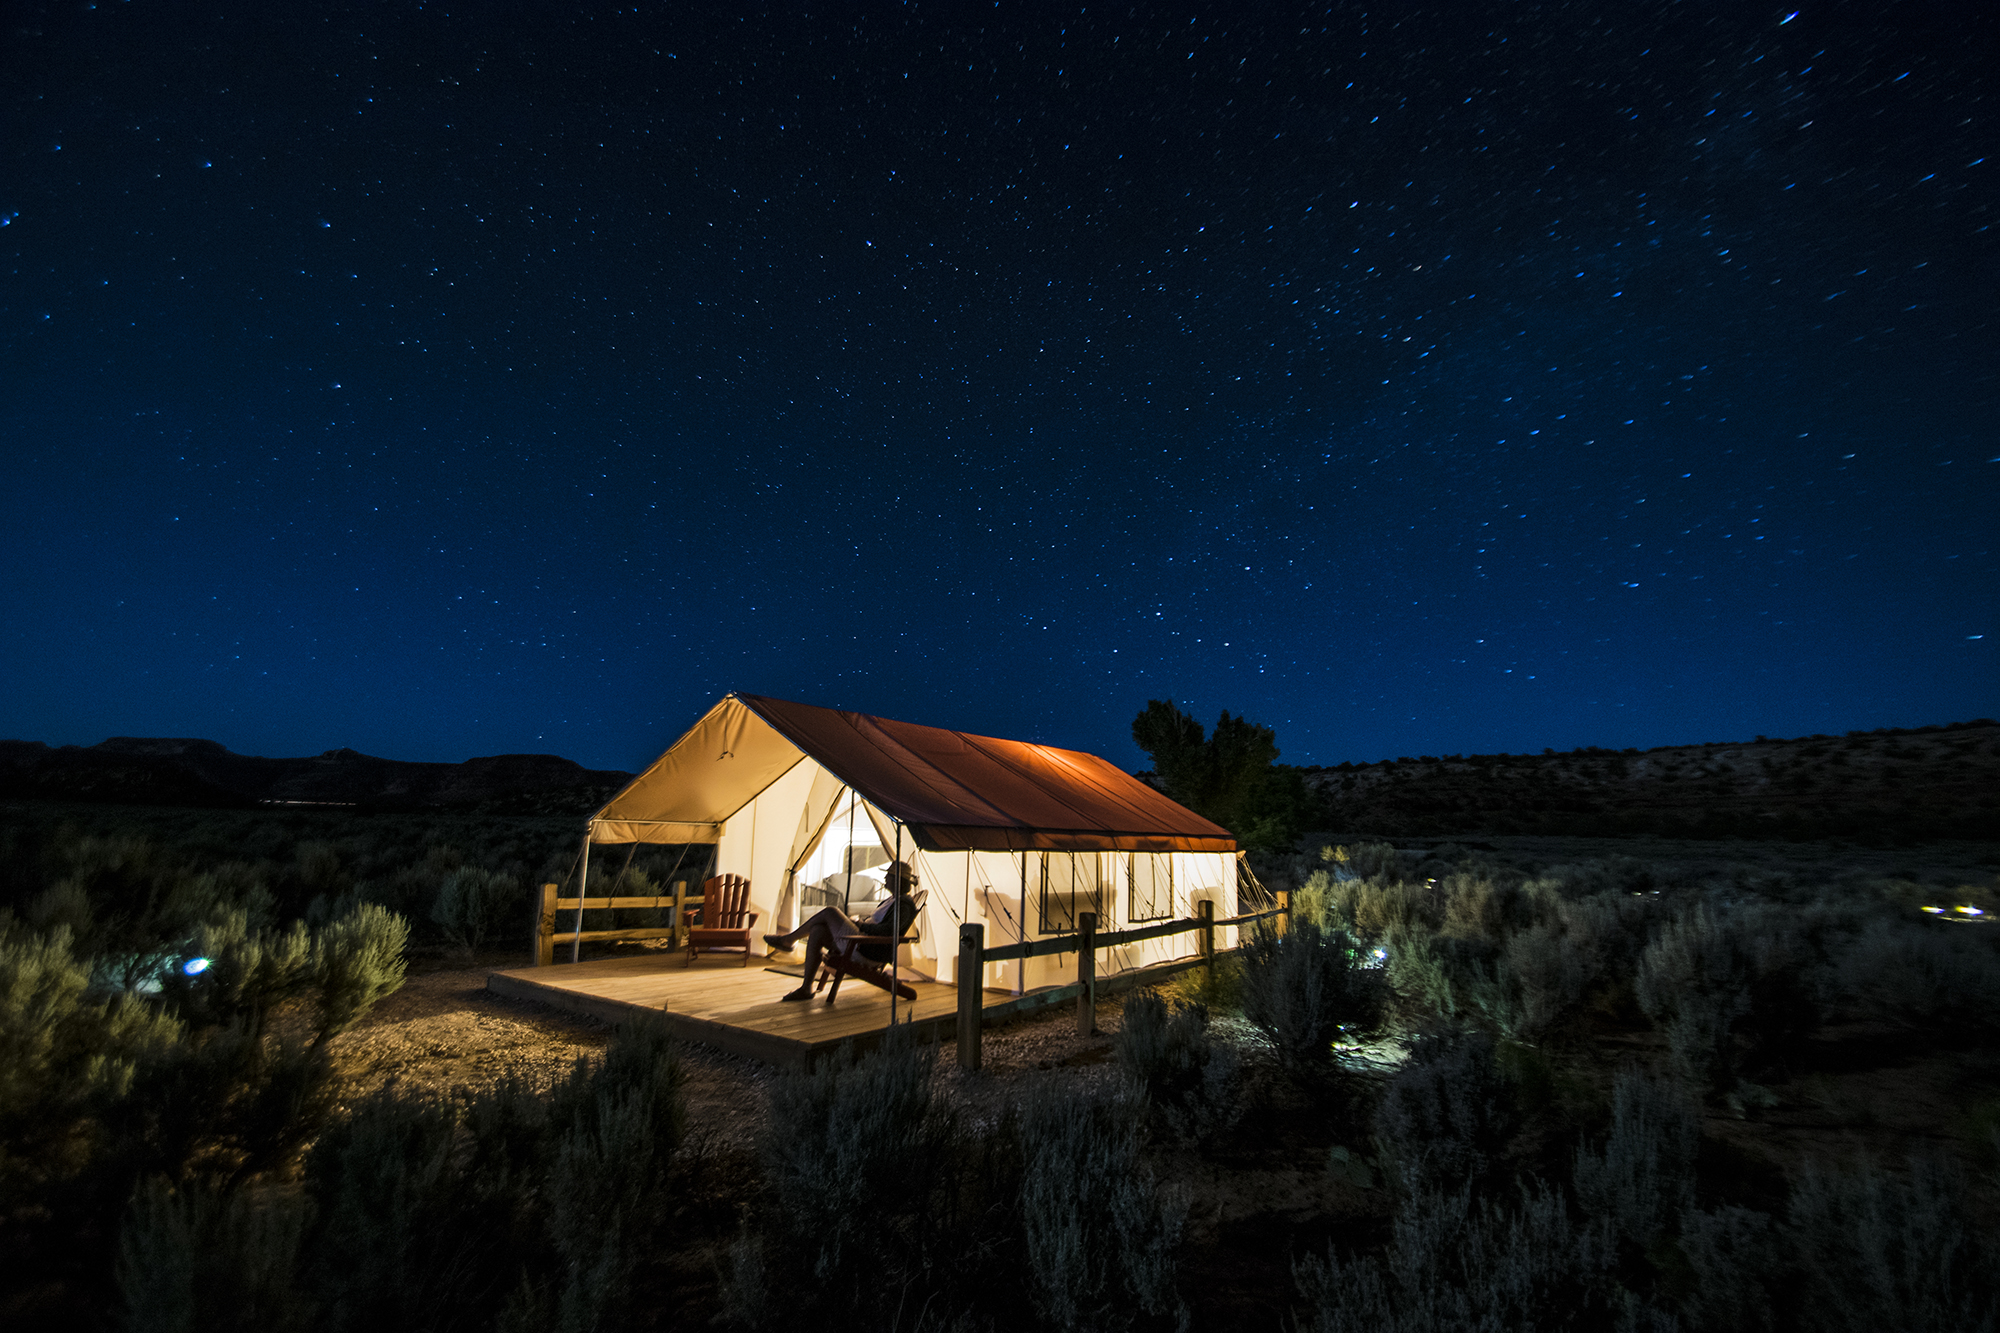 The Hayduke Tent - Fall into a King size bed and wake to a southwest view facing the Chocolate Cliffs. Start the day in shade and end it in sun, all the while just 65 yards from washrooms. Fun, funky and full of character, the Hayduke is ready to roll out the hospitality.